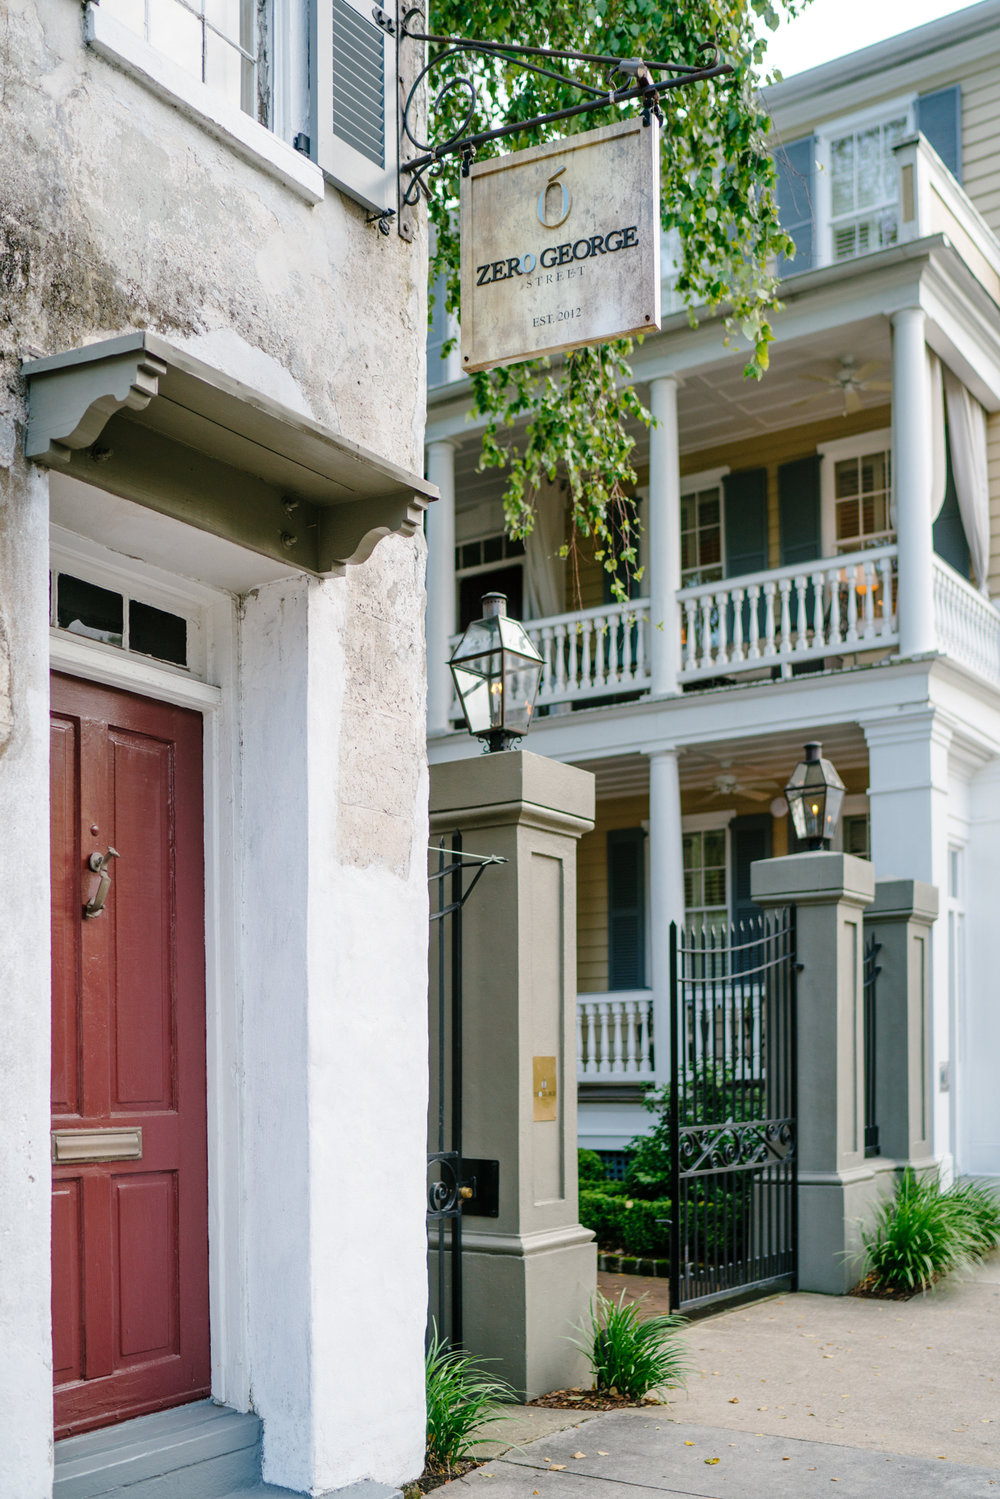 Zero George Street in Charleston | Never Settle Travel